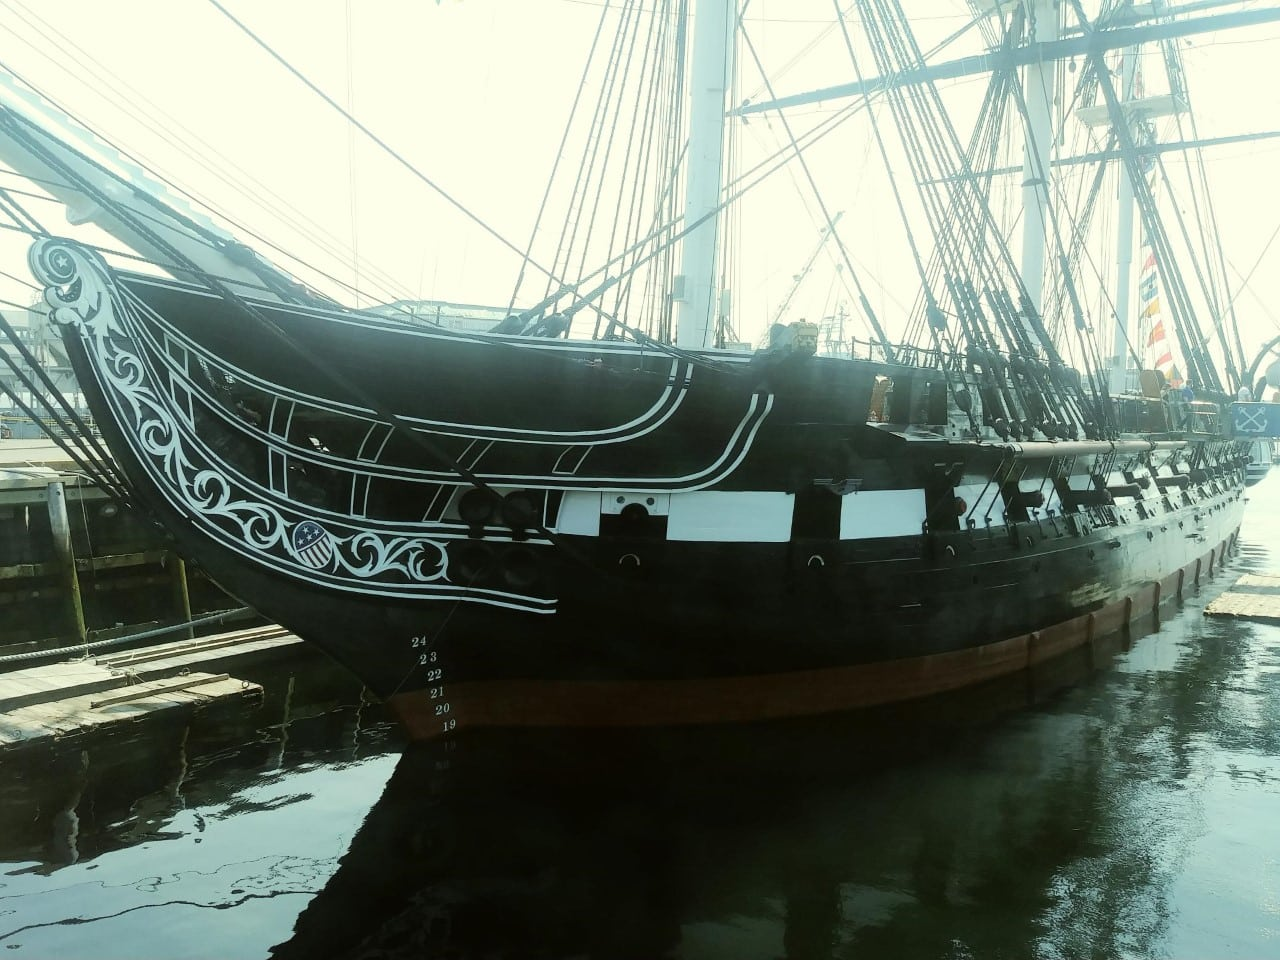 U.S.S. Constitution – Our Day At Old Ironsides